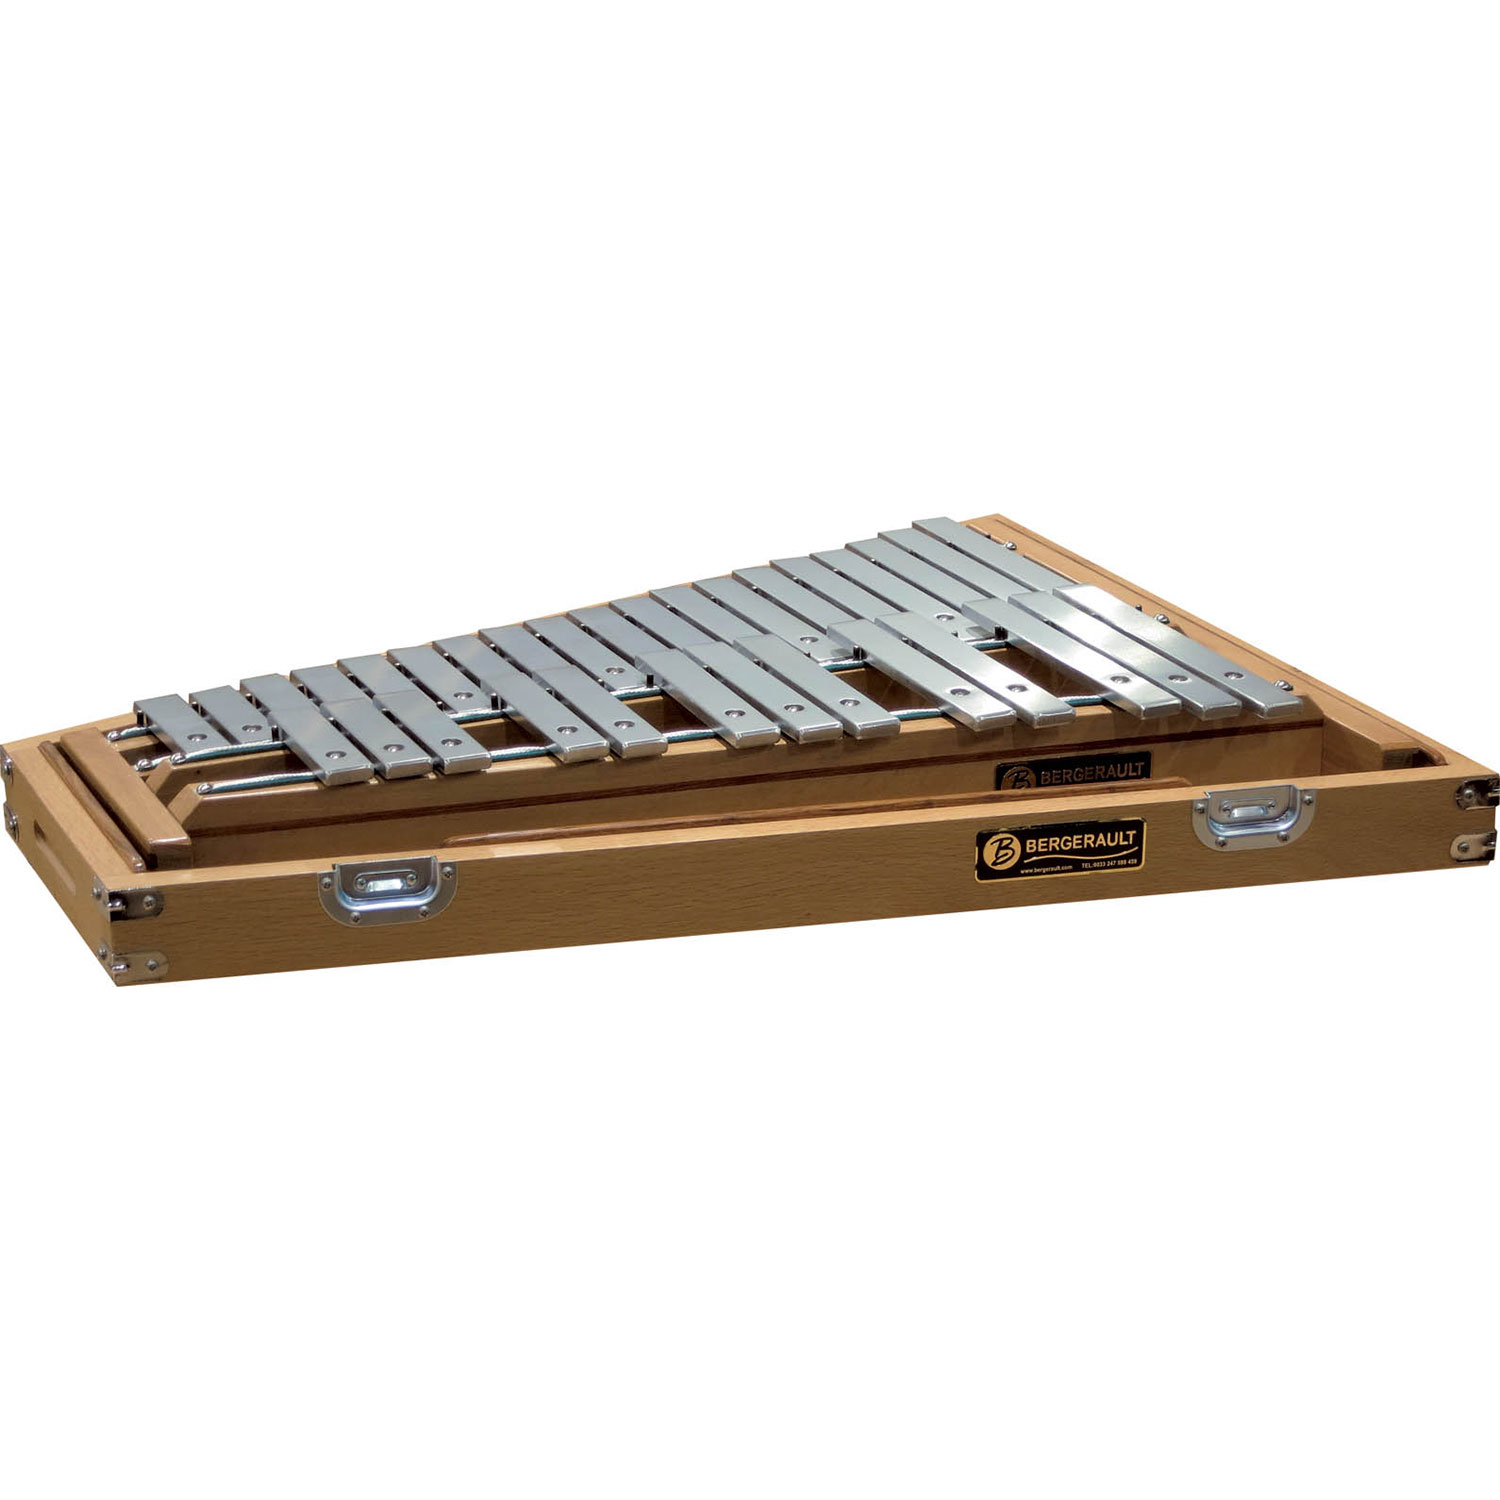 Bergerault 2.5 Octave Signature Series Glockenspiel with Oak Case